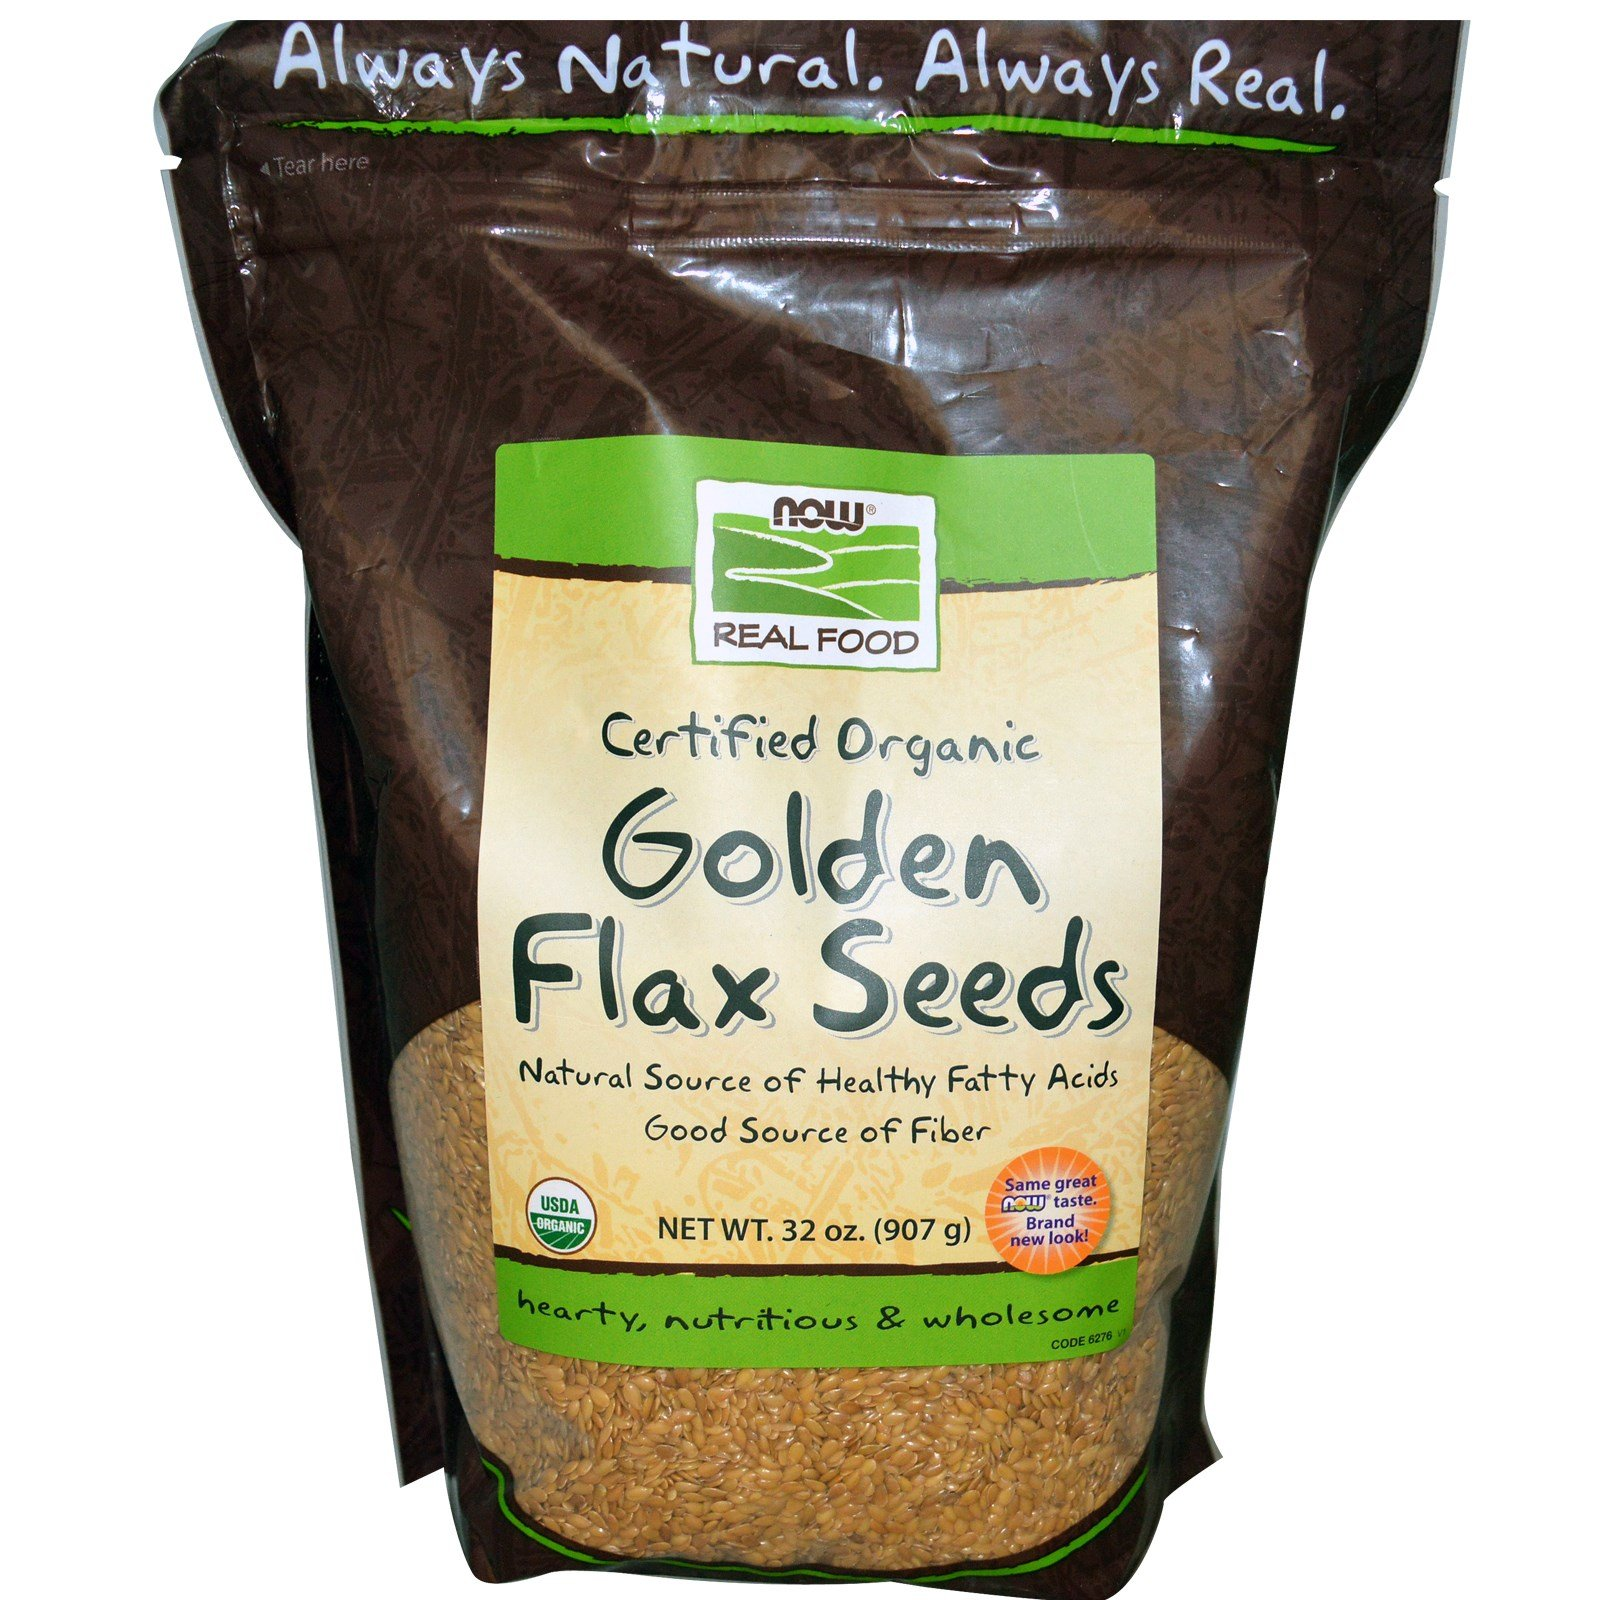 Now Foods Golden Flax Seeds Organic, 2 lb (Pack of 6) by NOW Foods